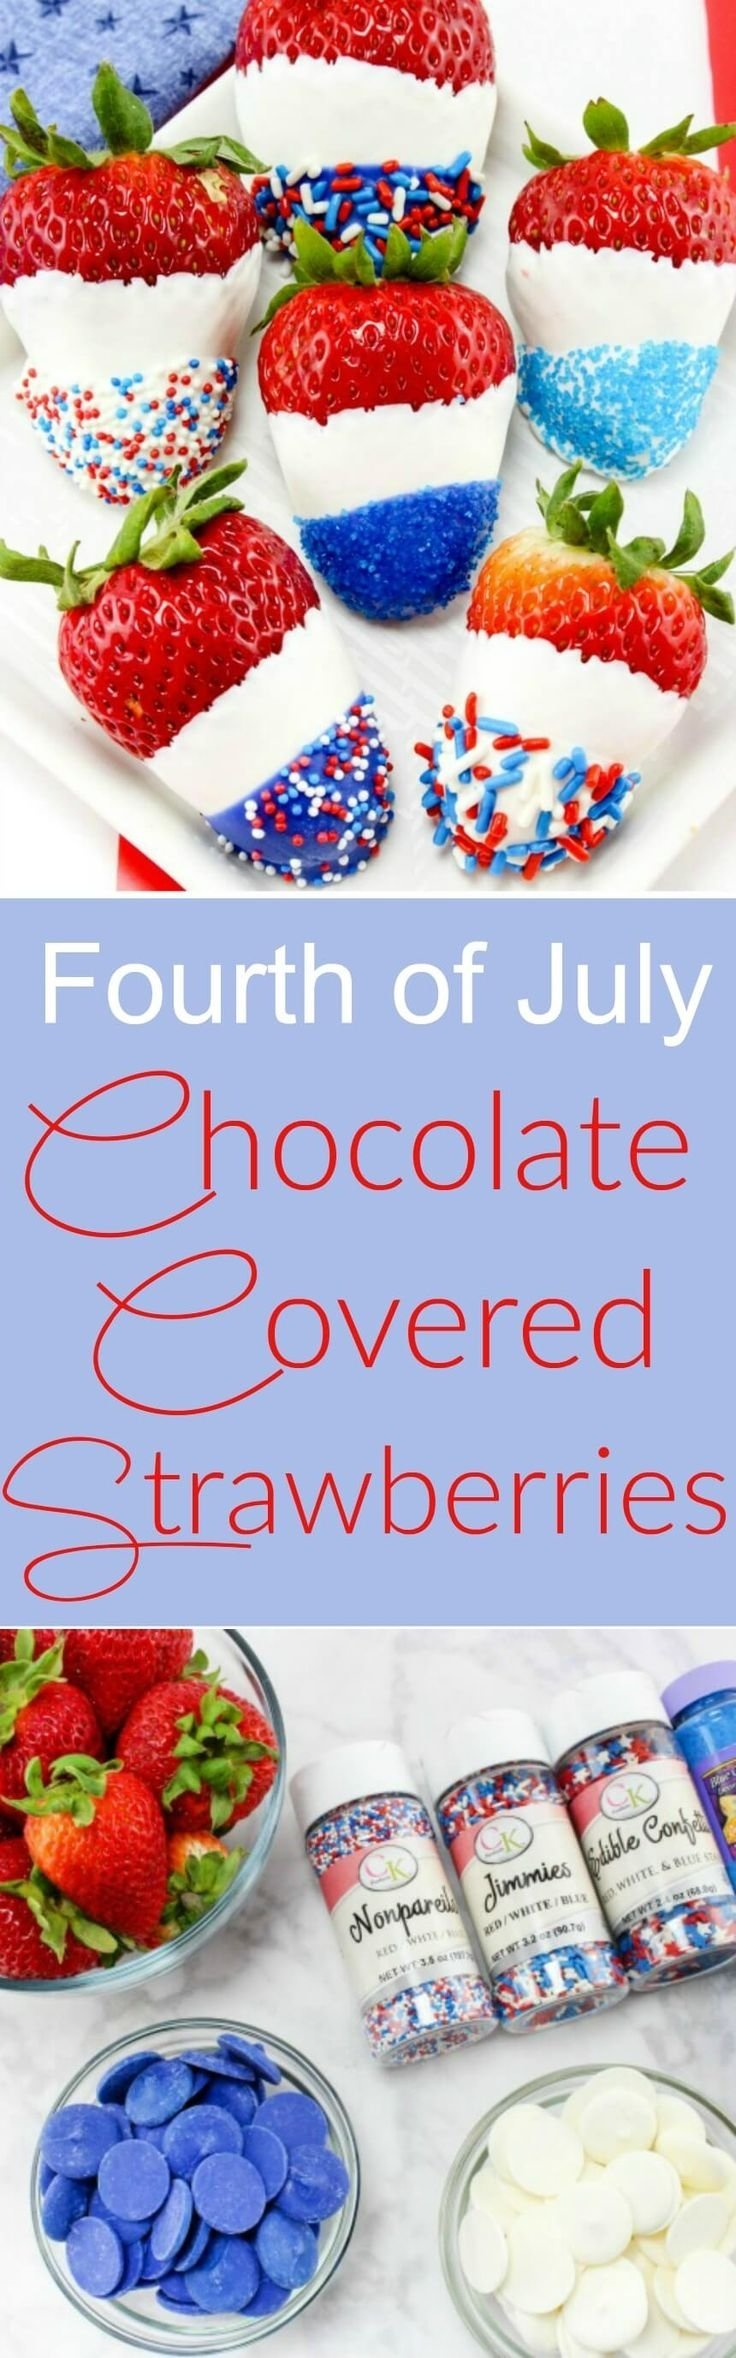 10 Unique 4Th Of July Cookout Ideas 464 best 4th of july ideas images on pinterest craft diy paper 2020